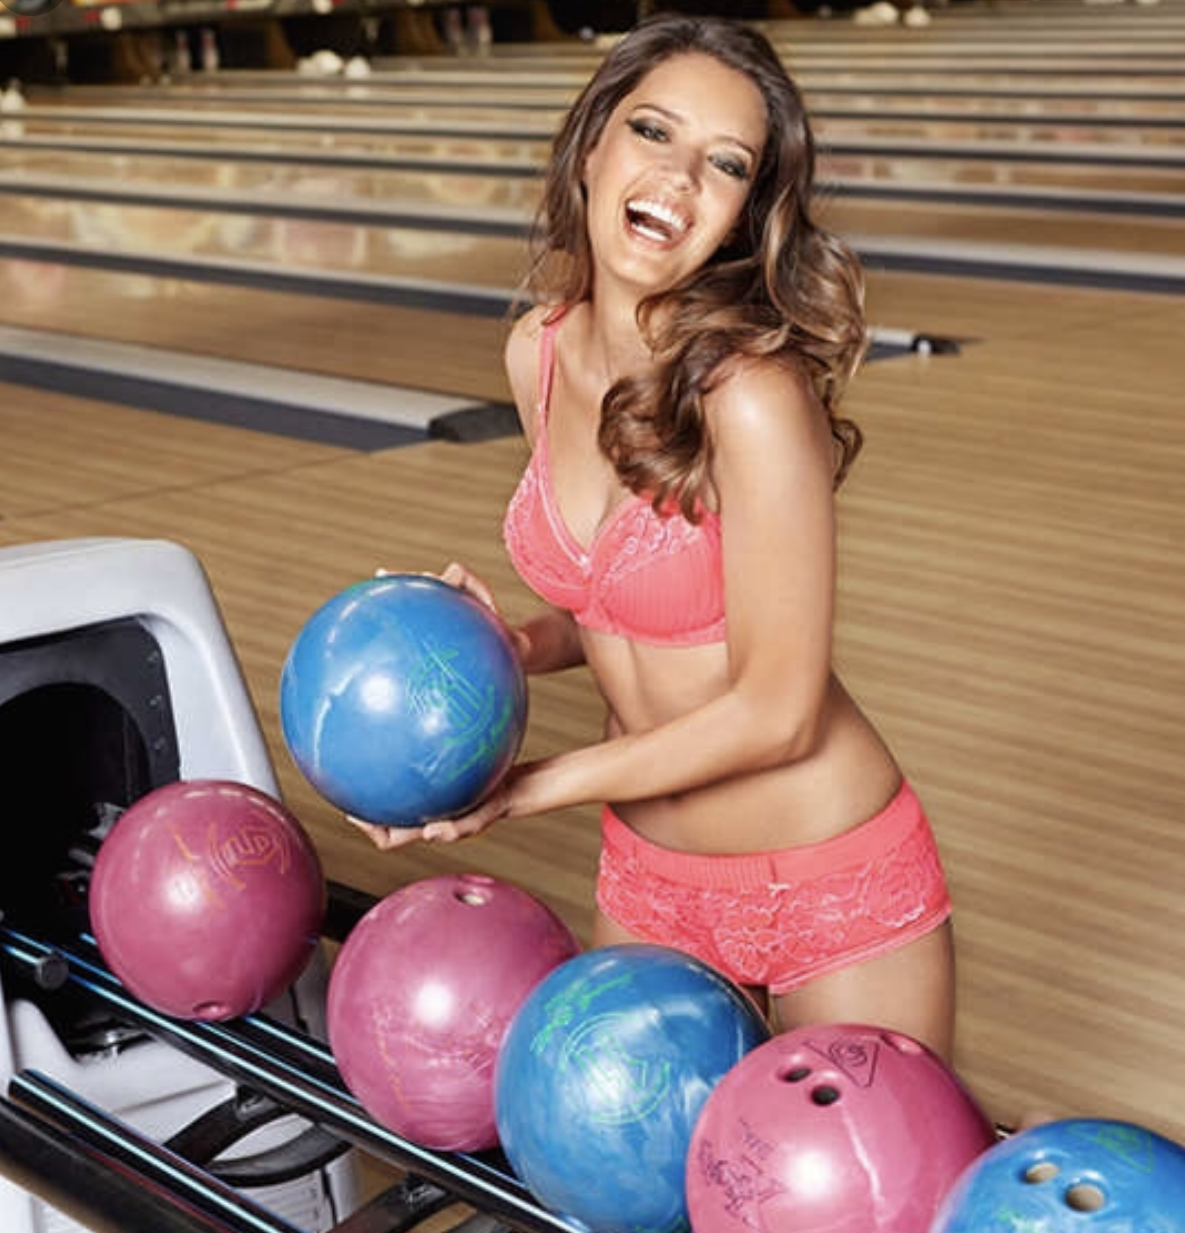 bowling babe in lingerie with blue ball